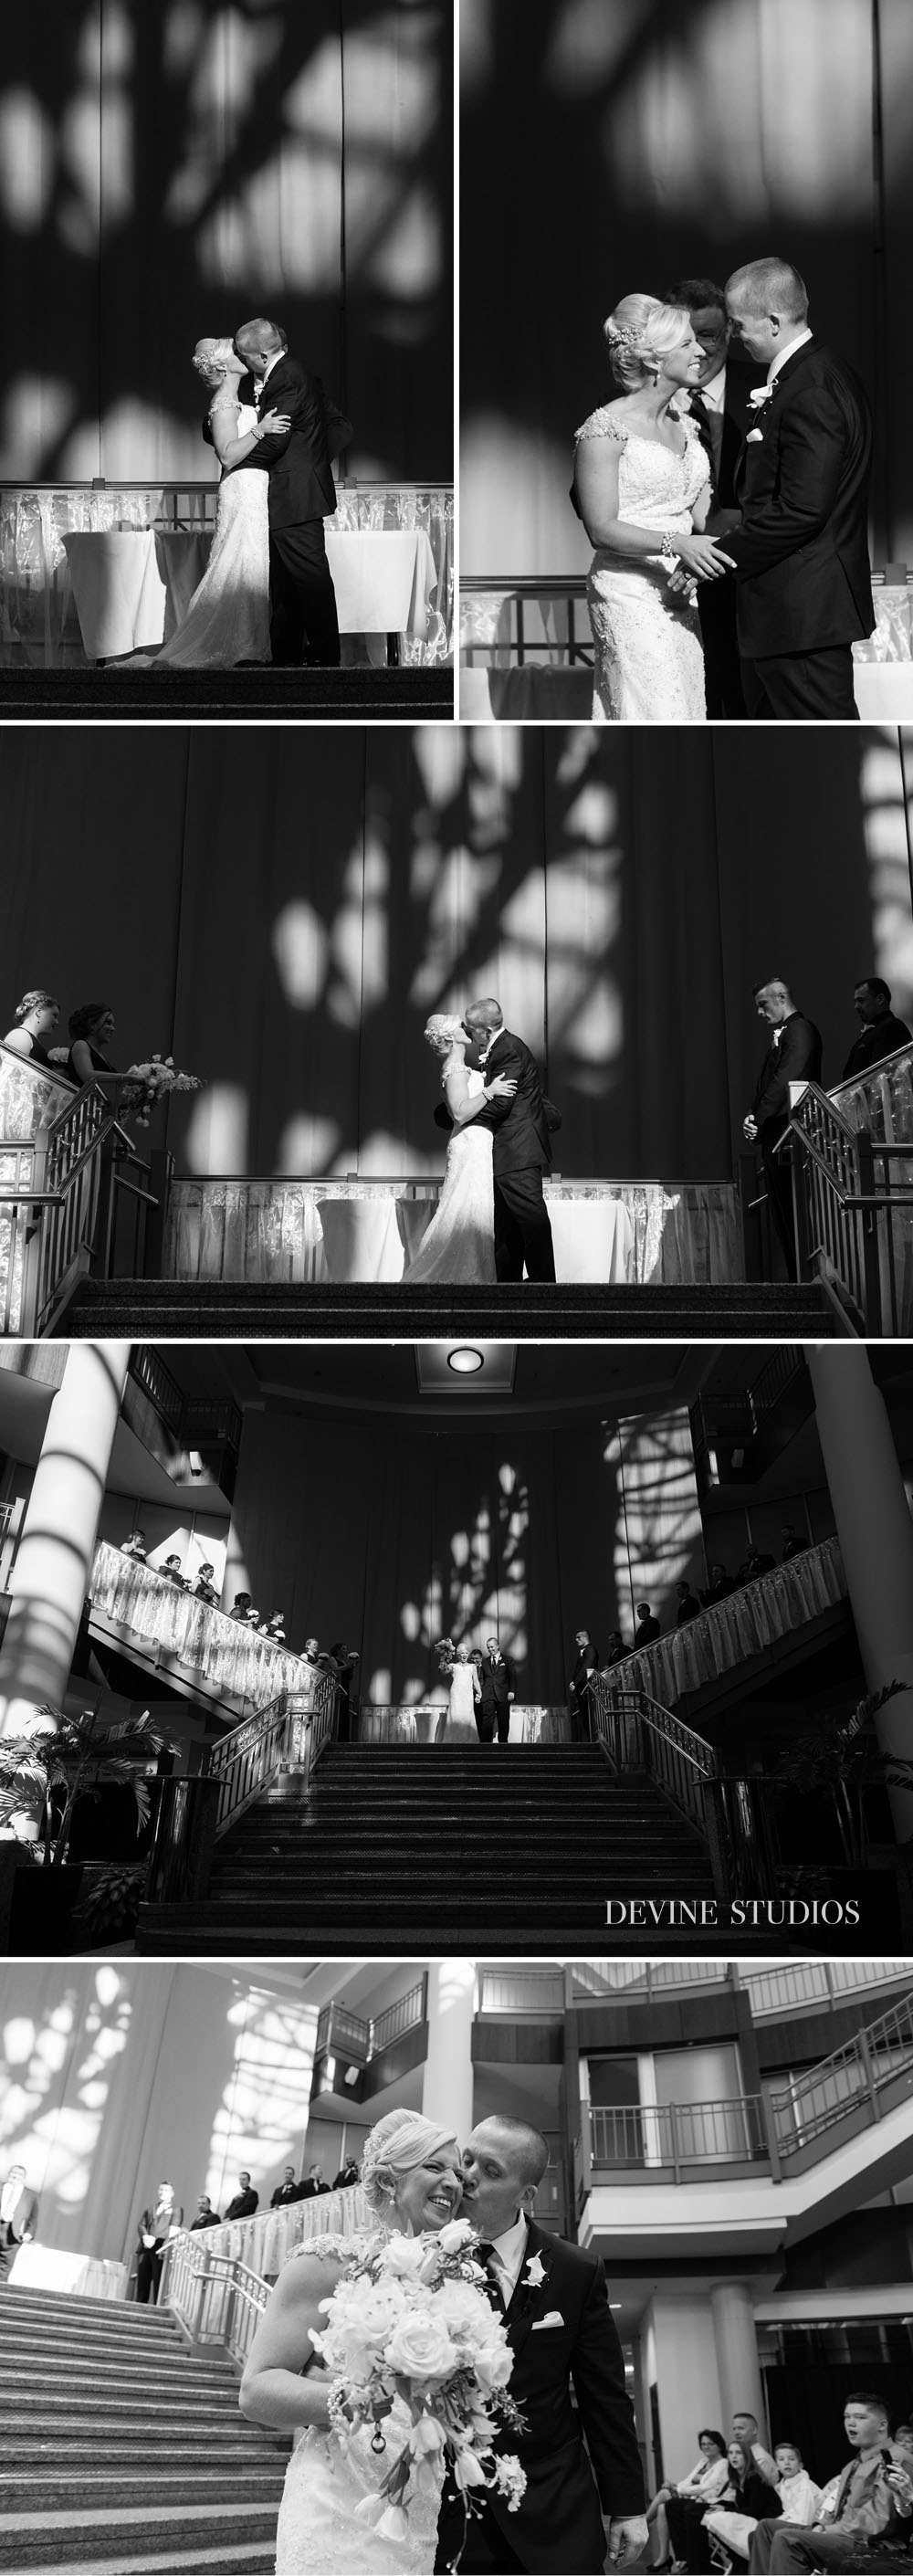 http://devinestudios.com/boudoir/wp-content/uploads/2016/05/10-839-post/Kansas-City-Wedding-Photography-Town-Pavilion-photojournalist-photographers12.jpg